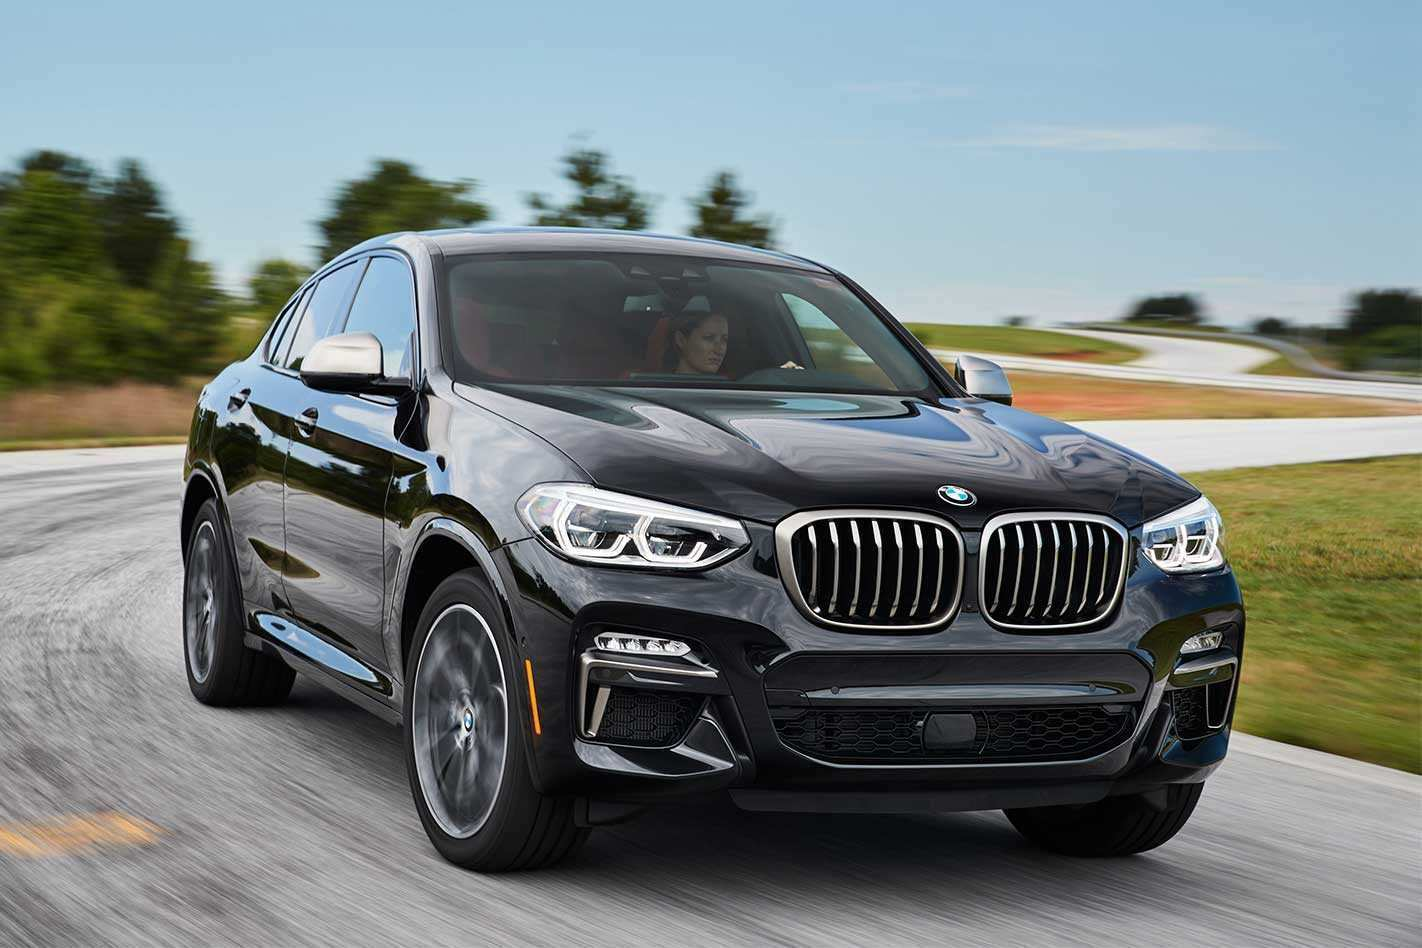 41 All New 2020 Bmw X4M Release Date And Concept